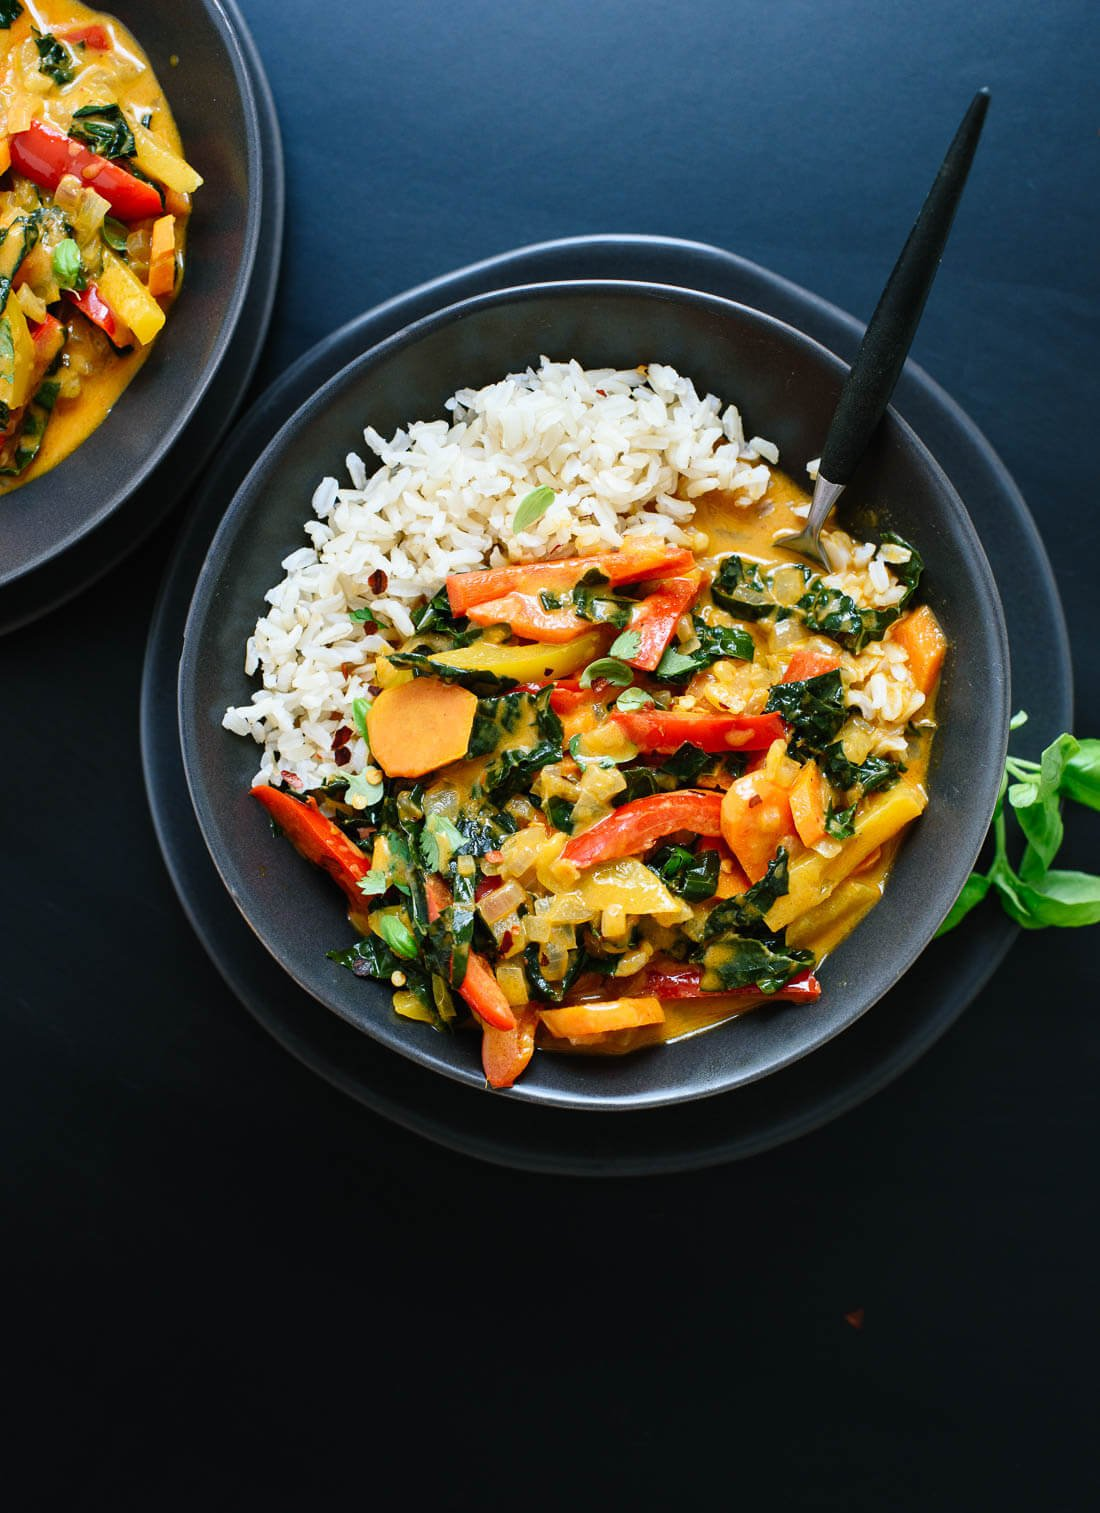 Curry recipes bbc good food inducedfo linkedcurry recipes bbc good foodbeef curry recipes bbc good foodchicken curry recipes bbc good foodvegetarian curry recipes bbc good foodslow cooker forumfinder Image collections